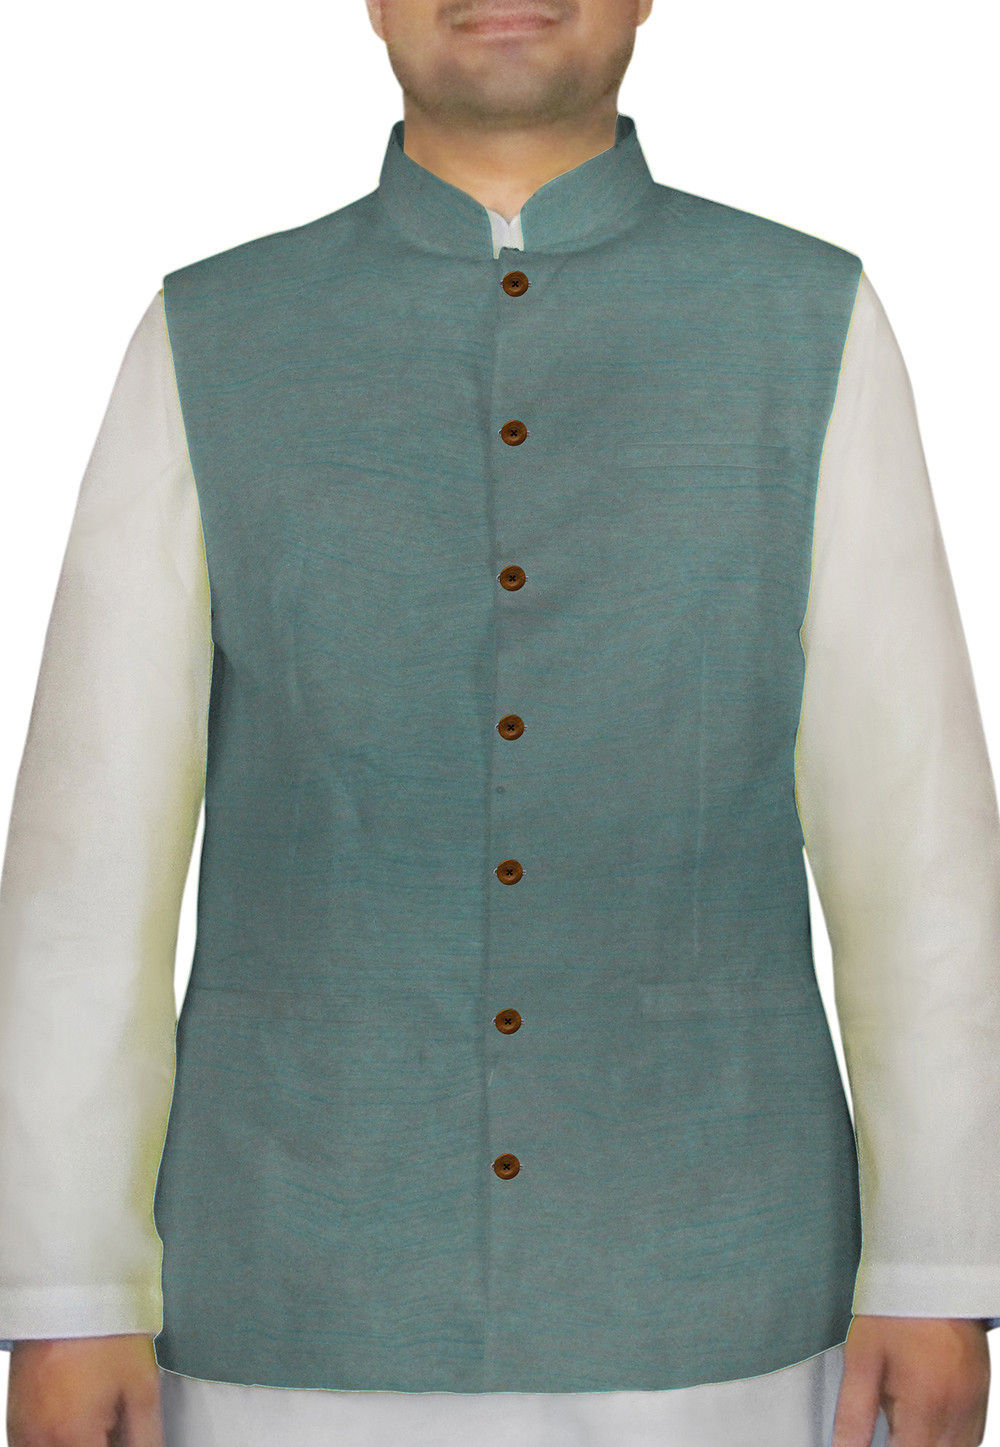 Plain Dupion Silk Nehru Jacket in Teal Blue